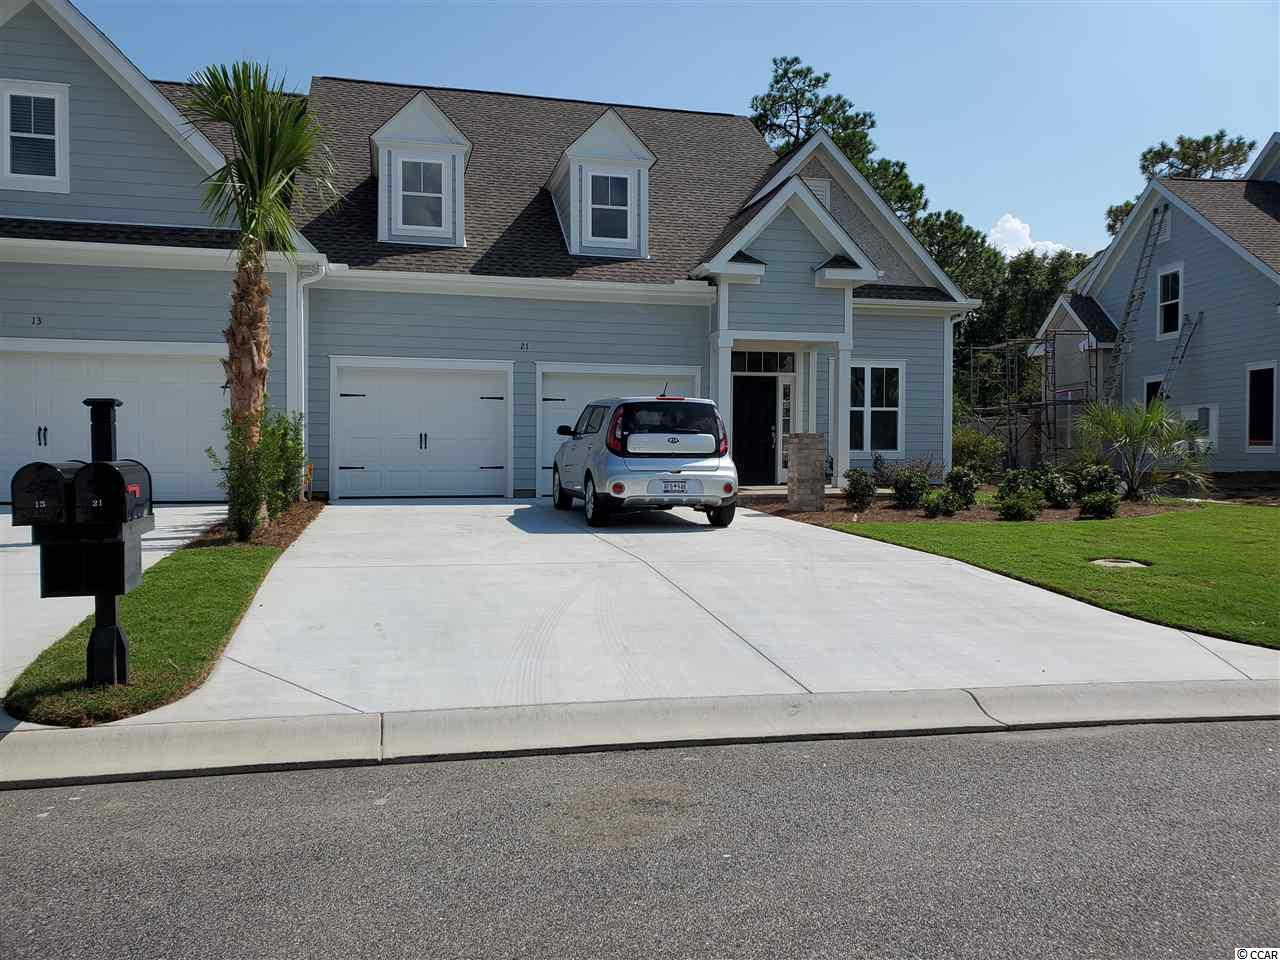 Townhouse for Sale at Lot 13 Golf Club Circle Lot 13 Golf Club Circle Pawleys Island, South Carolina 29585 United States